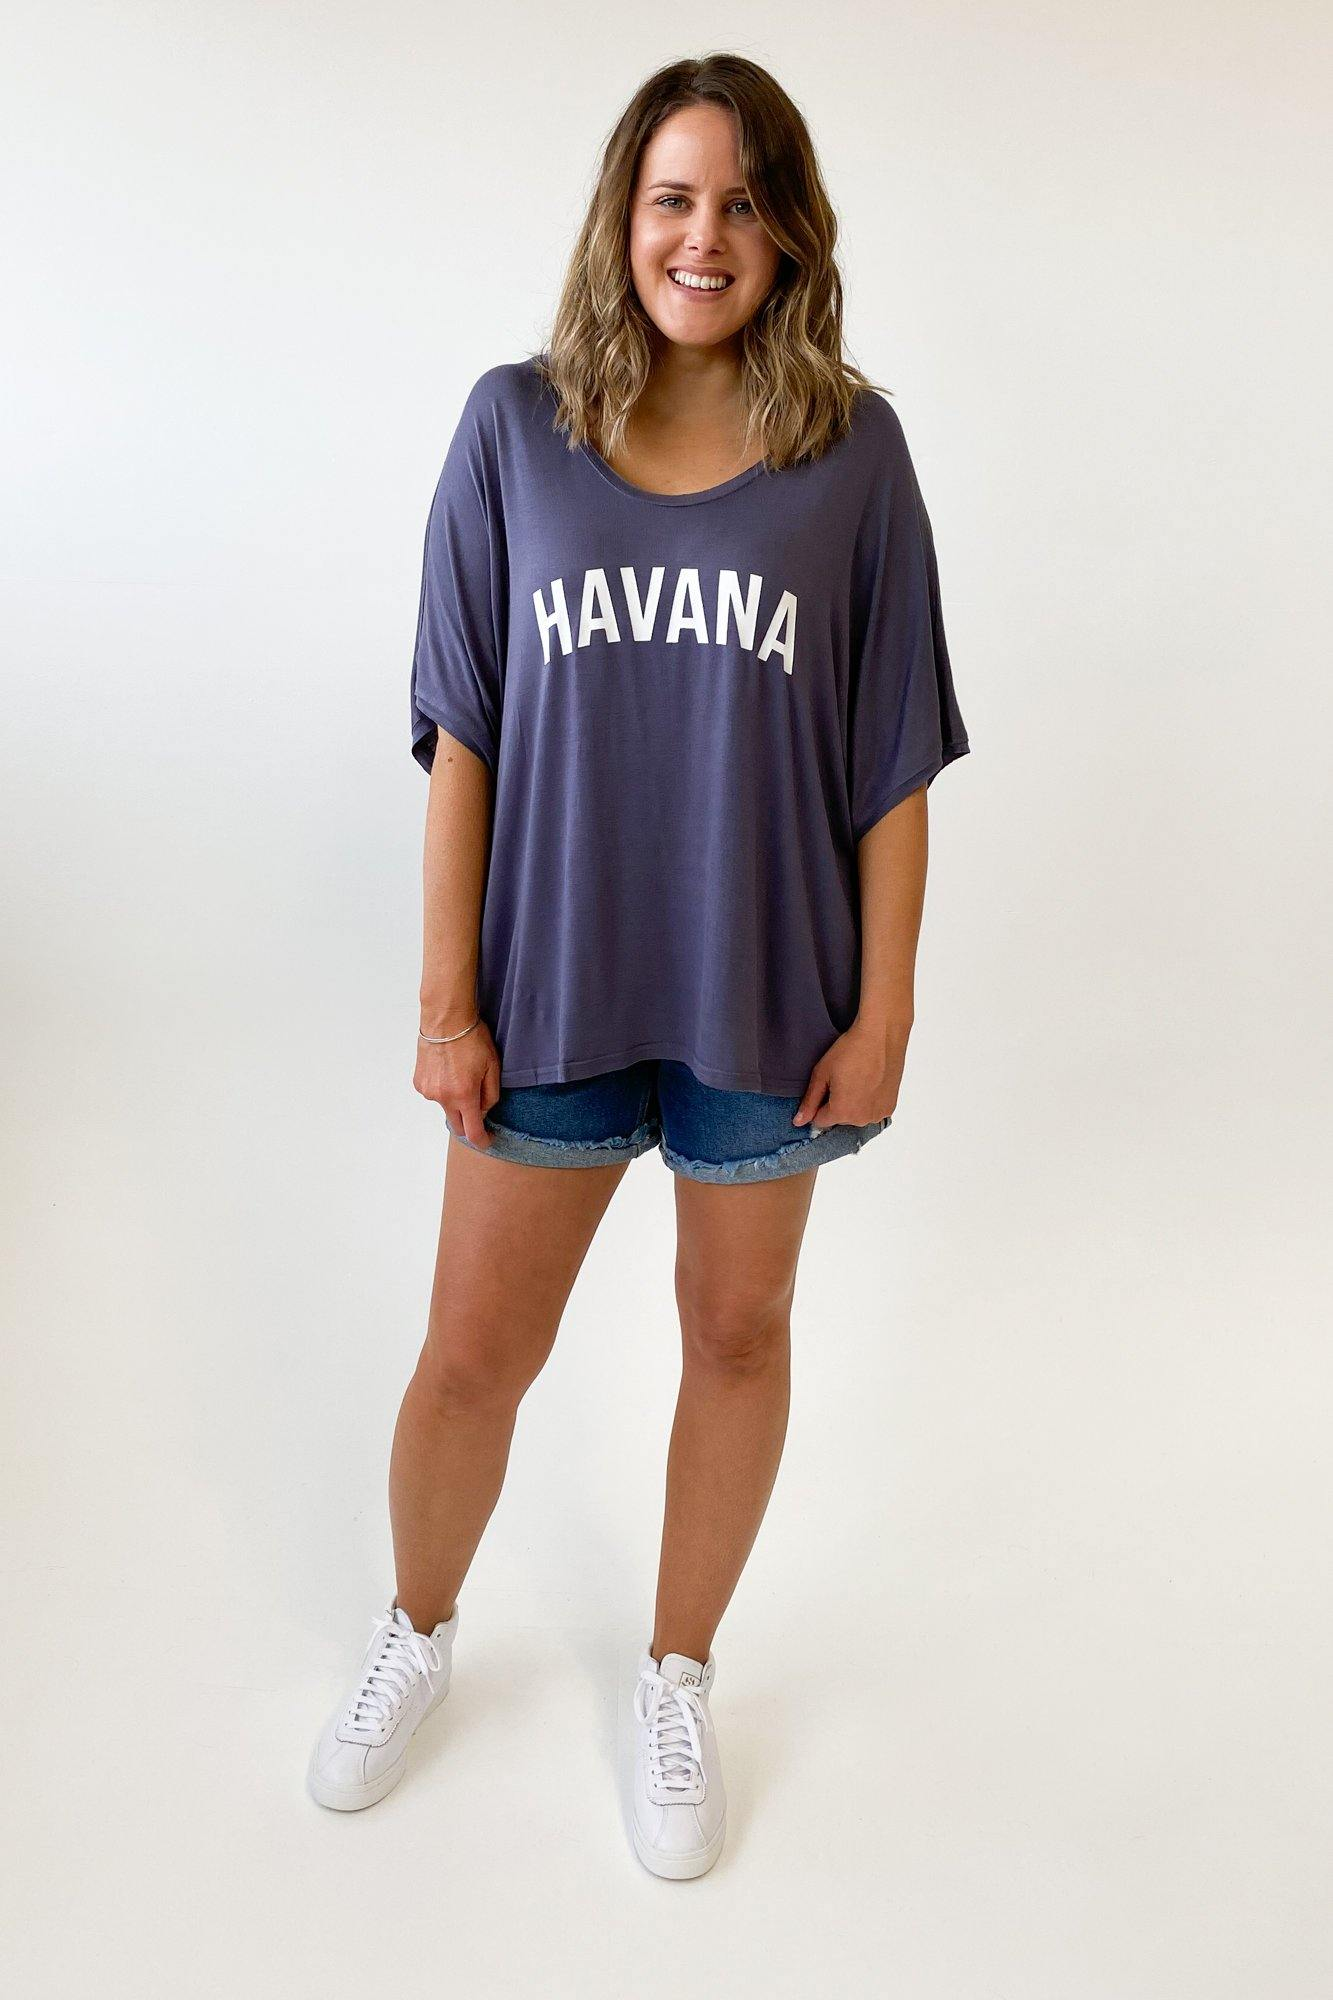 Haven Havana T-Shirt Denim